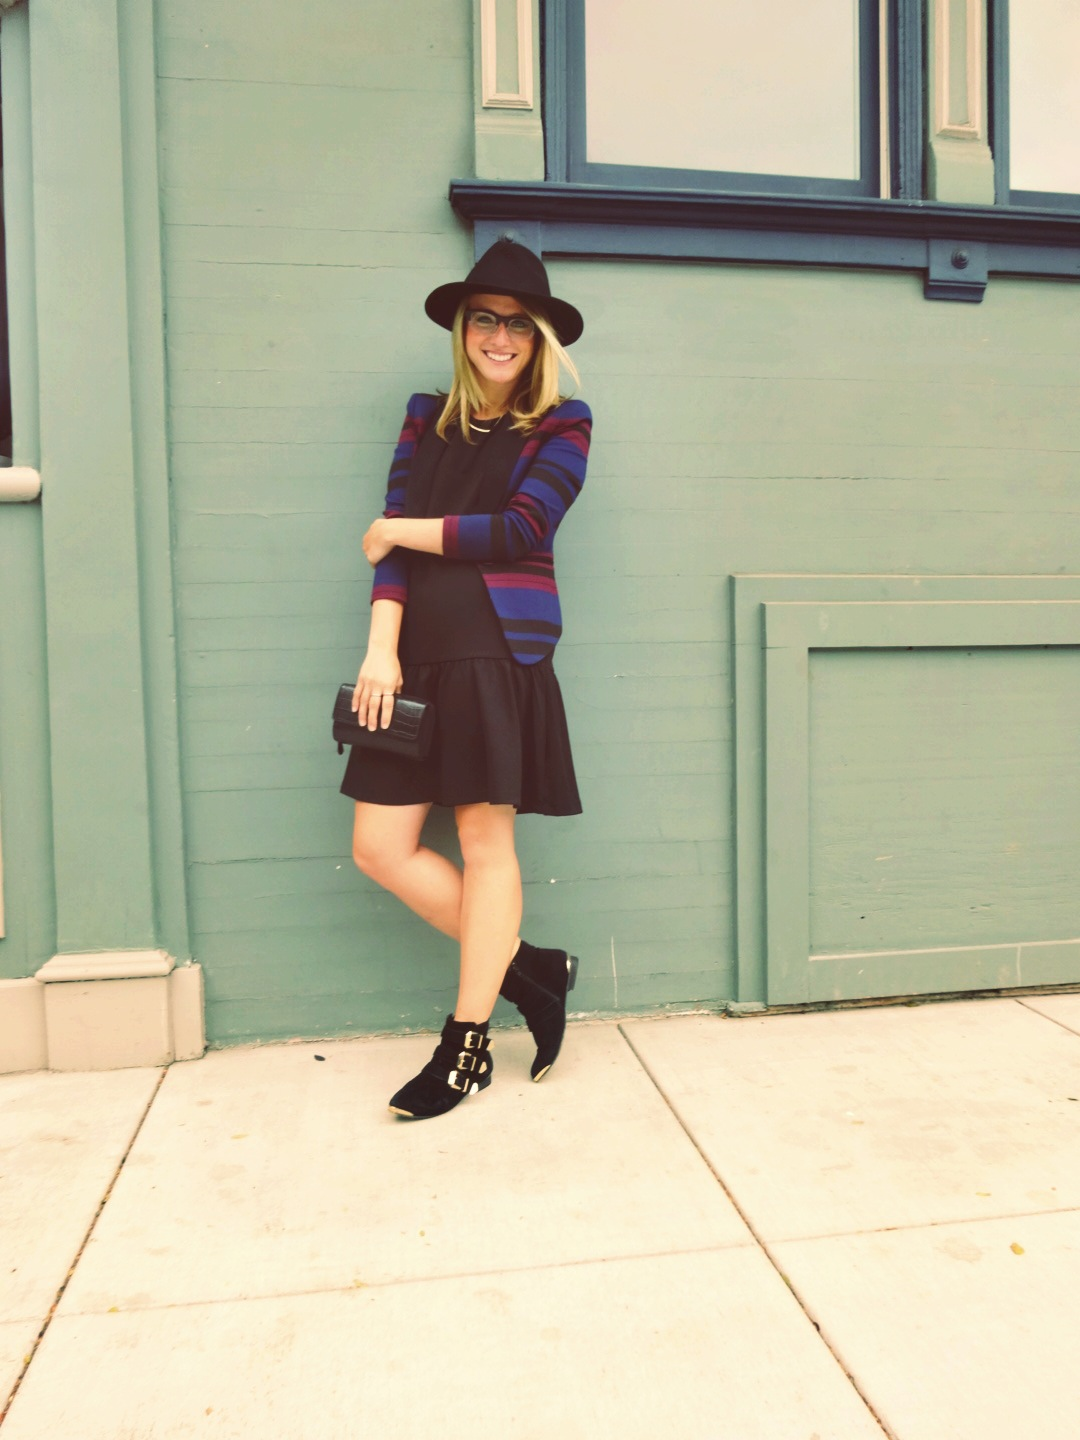 Hat: Hats of the Fillmore | Dress: H&M | Blazer: BCBG Generation | Shoes: Aldo